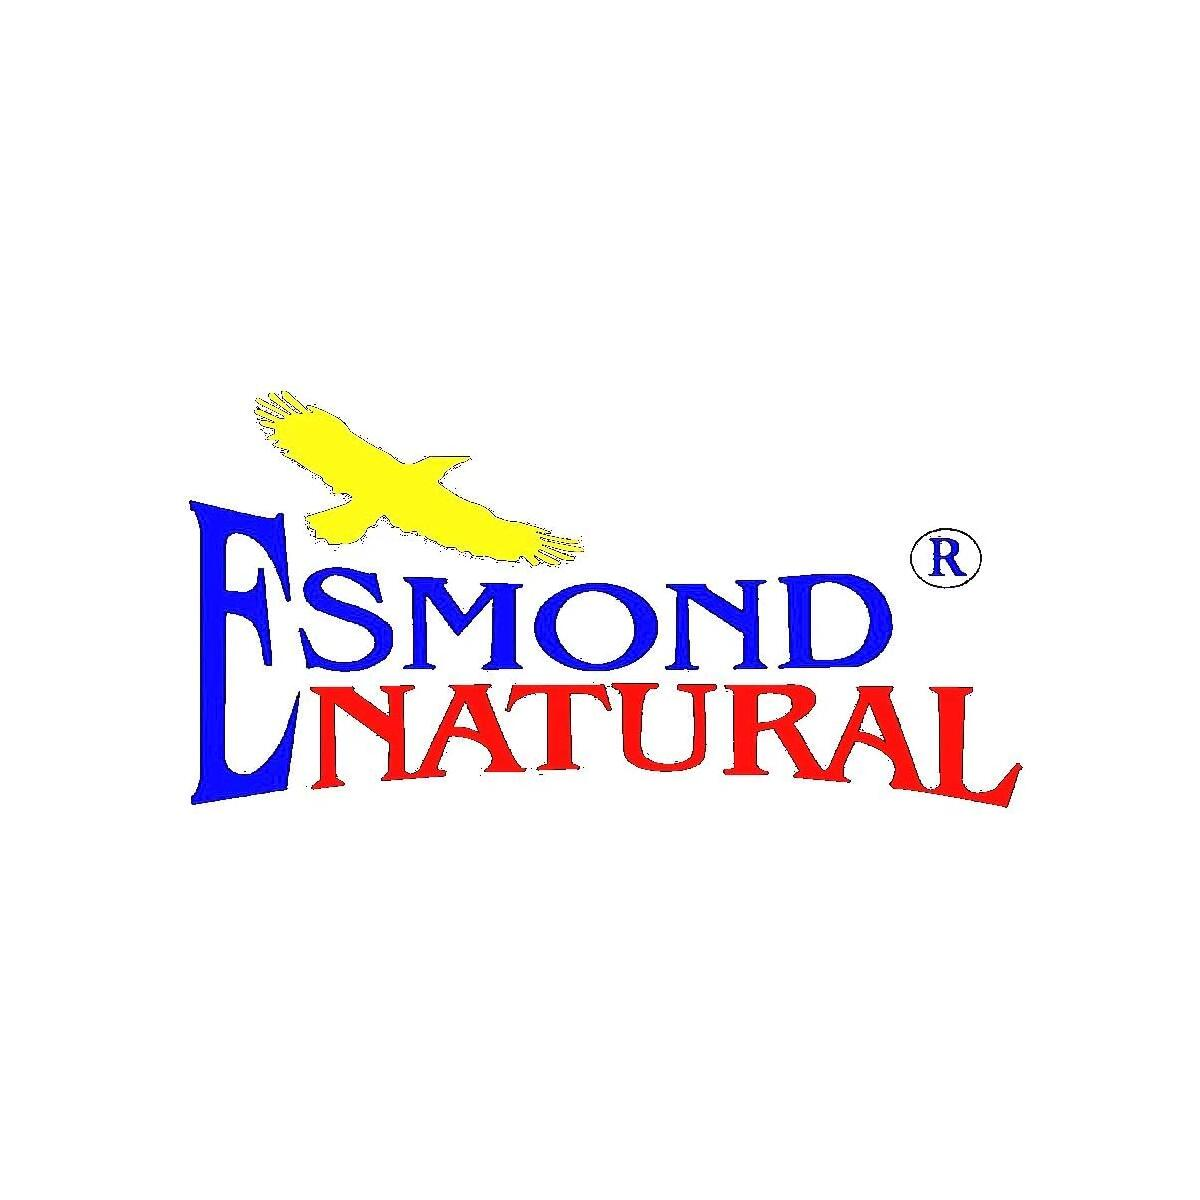 Esmond Natural: ENC Yeast and Malt Complex (Pressed Candy), GMP, Natural Product Assn Certified, Made in USA-1000mg, 60 Tablets